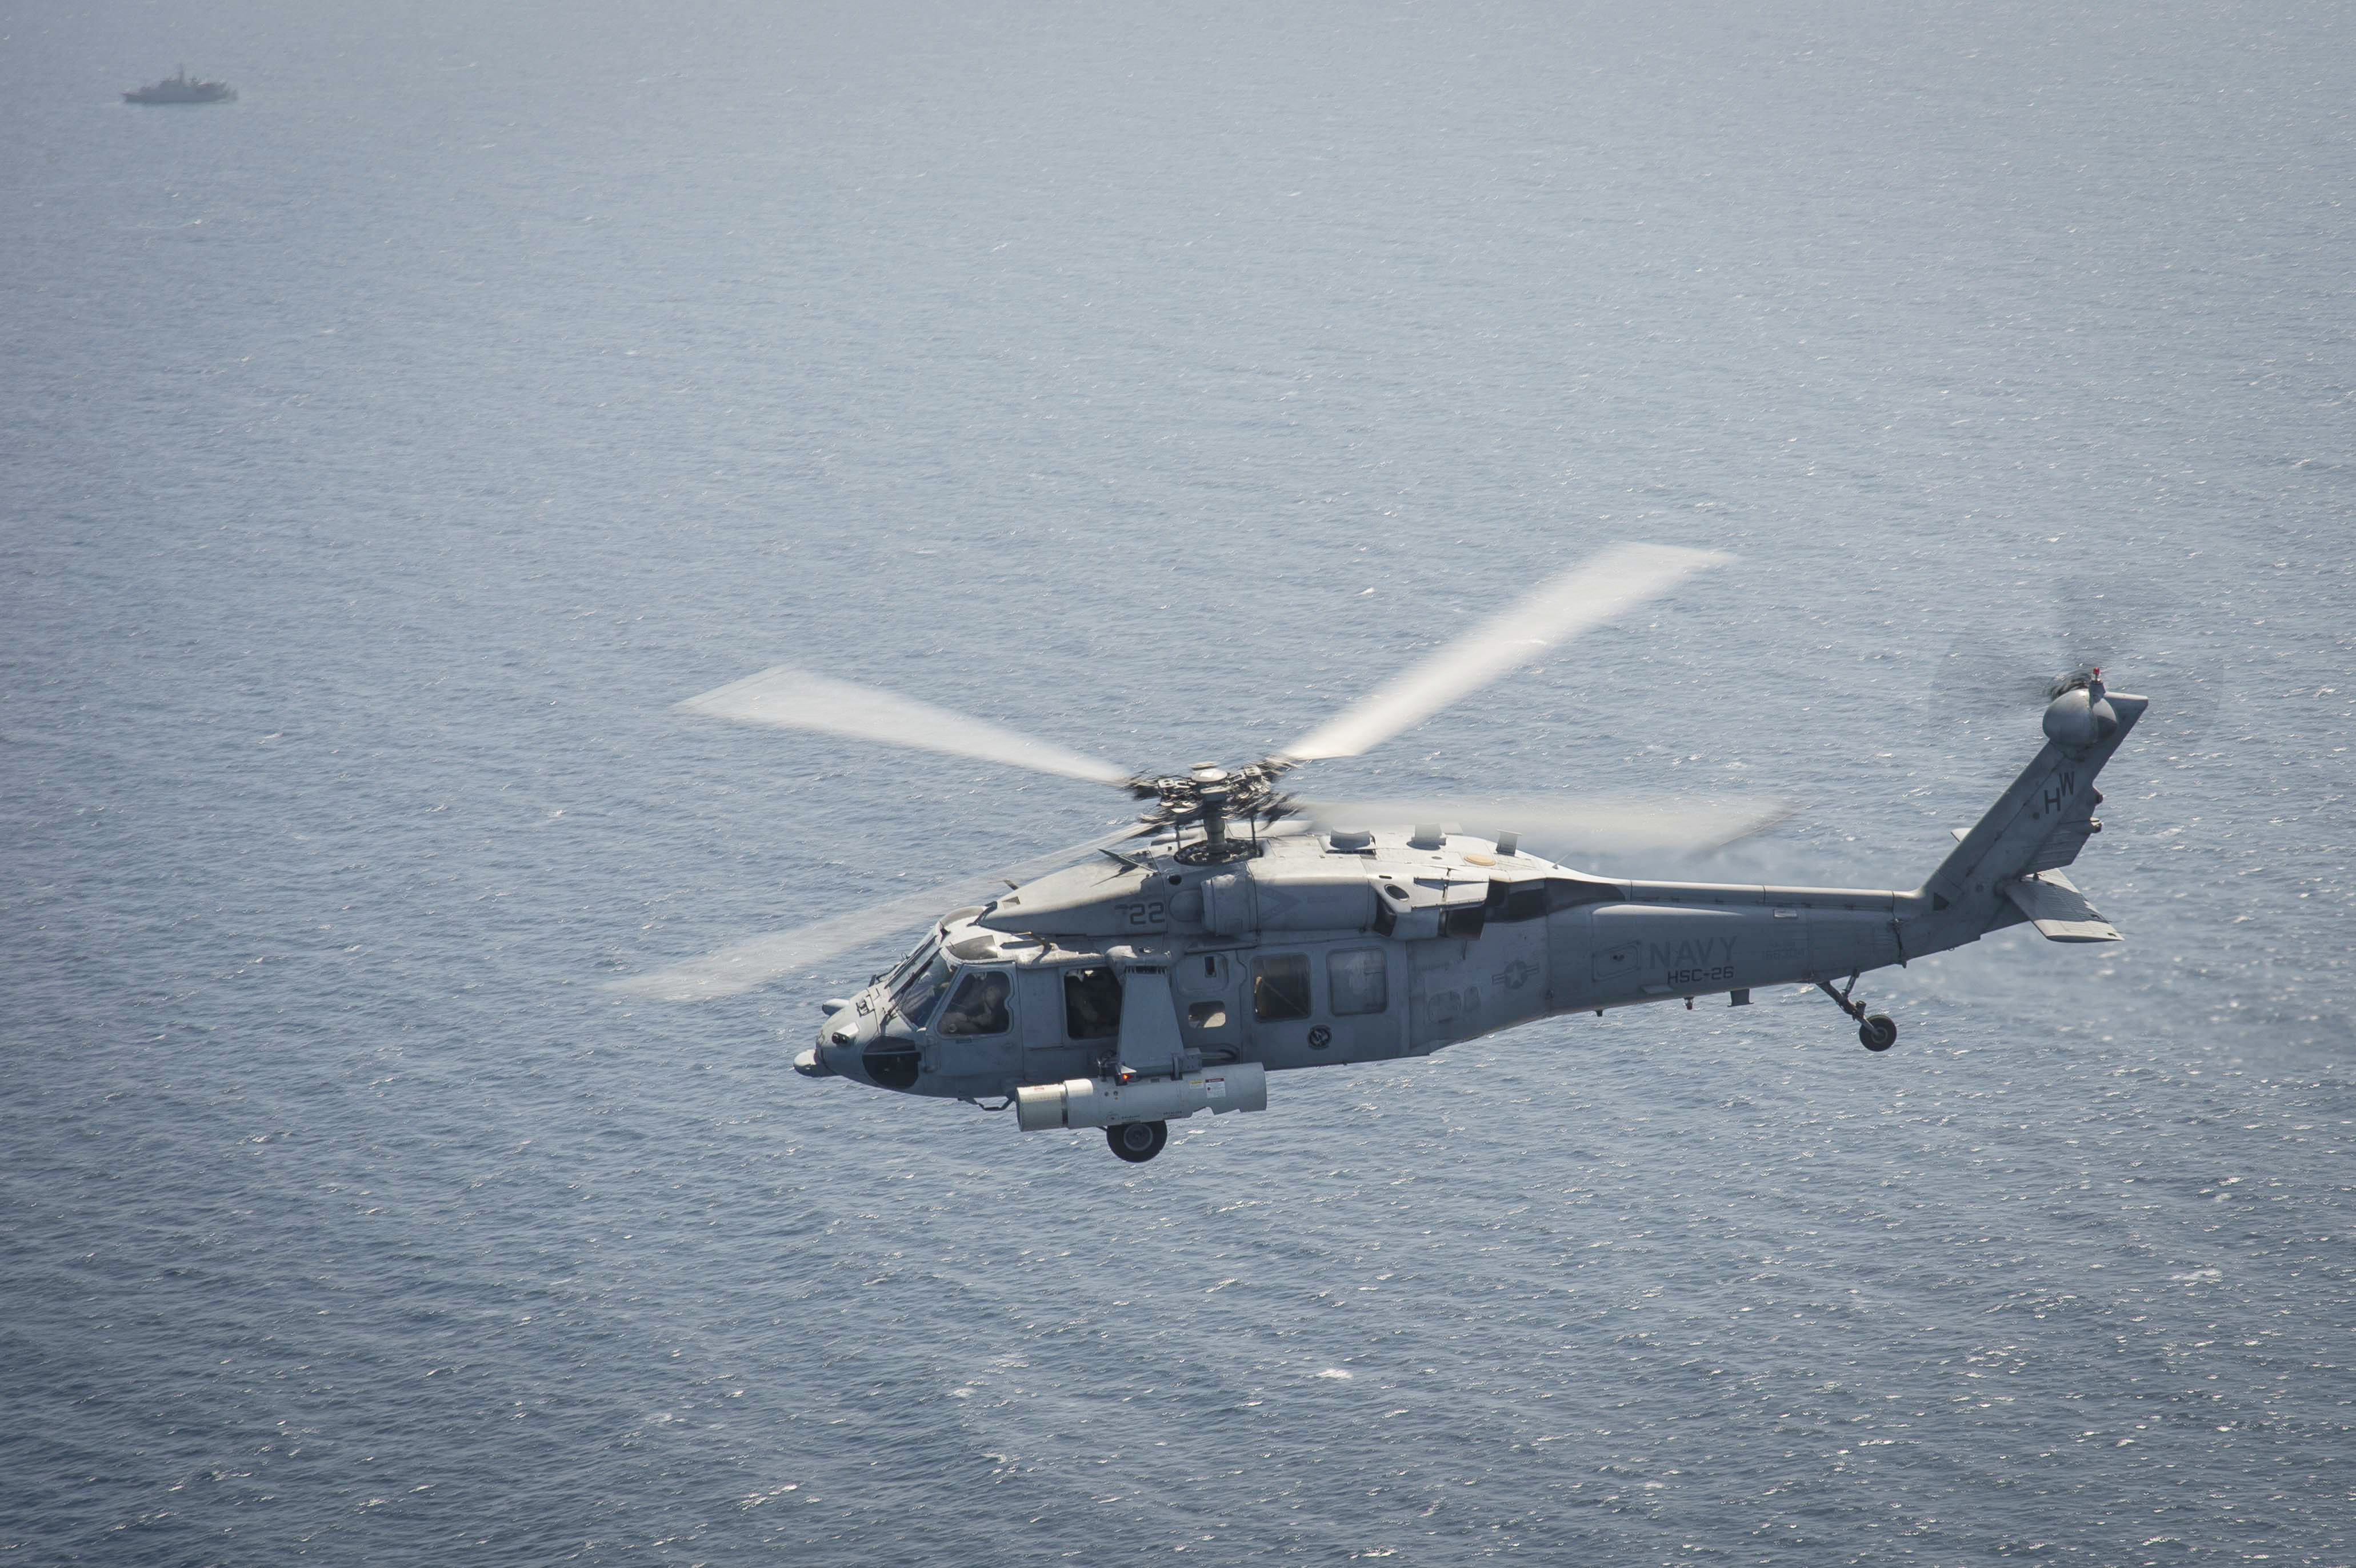 An MH-60S Sea Hawk helicopter from the Laser Hawks of Helicopter Sea Combat Squadron (HSC) 26, Detachment 2, equipped with the Airborne Laser Mine Detection System (ALMDS) conducts flight operations in August 2014. US Navy photo.